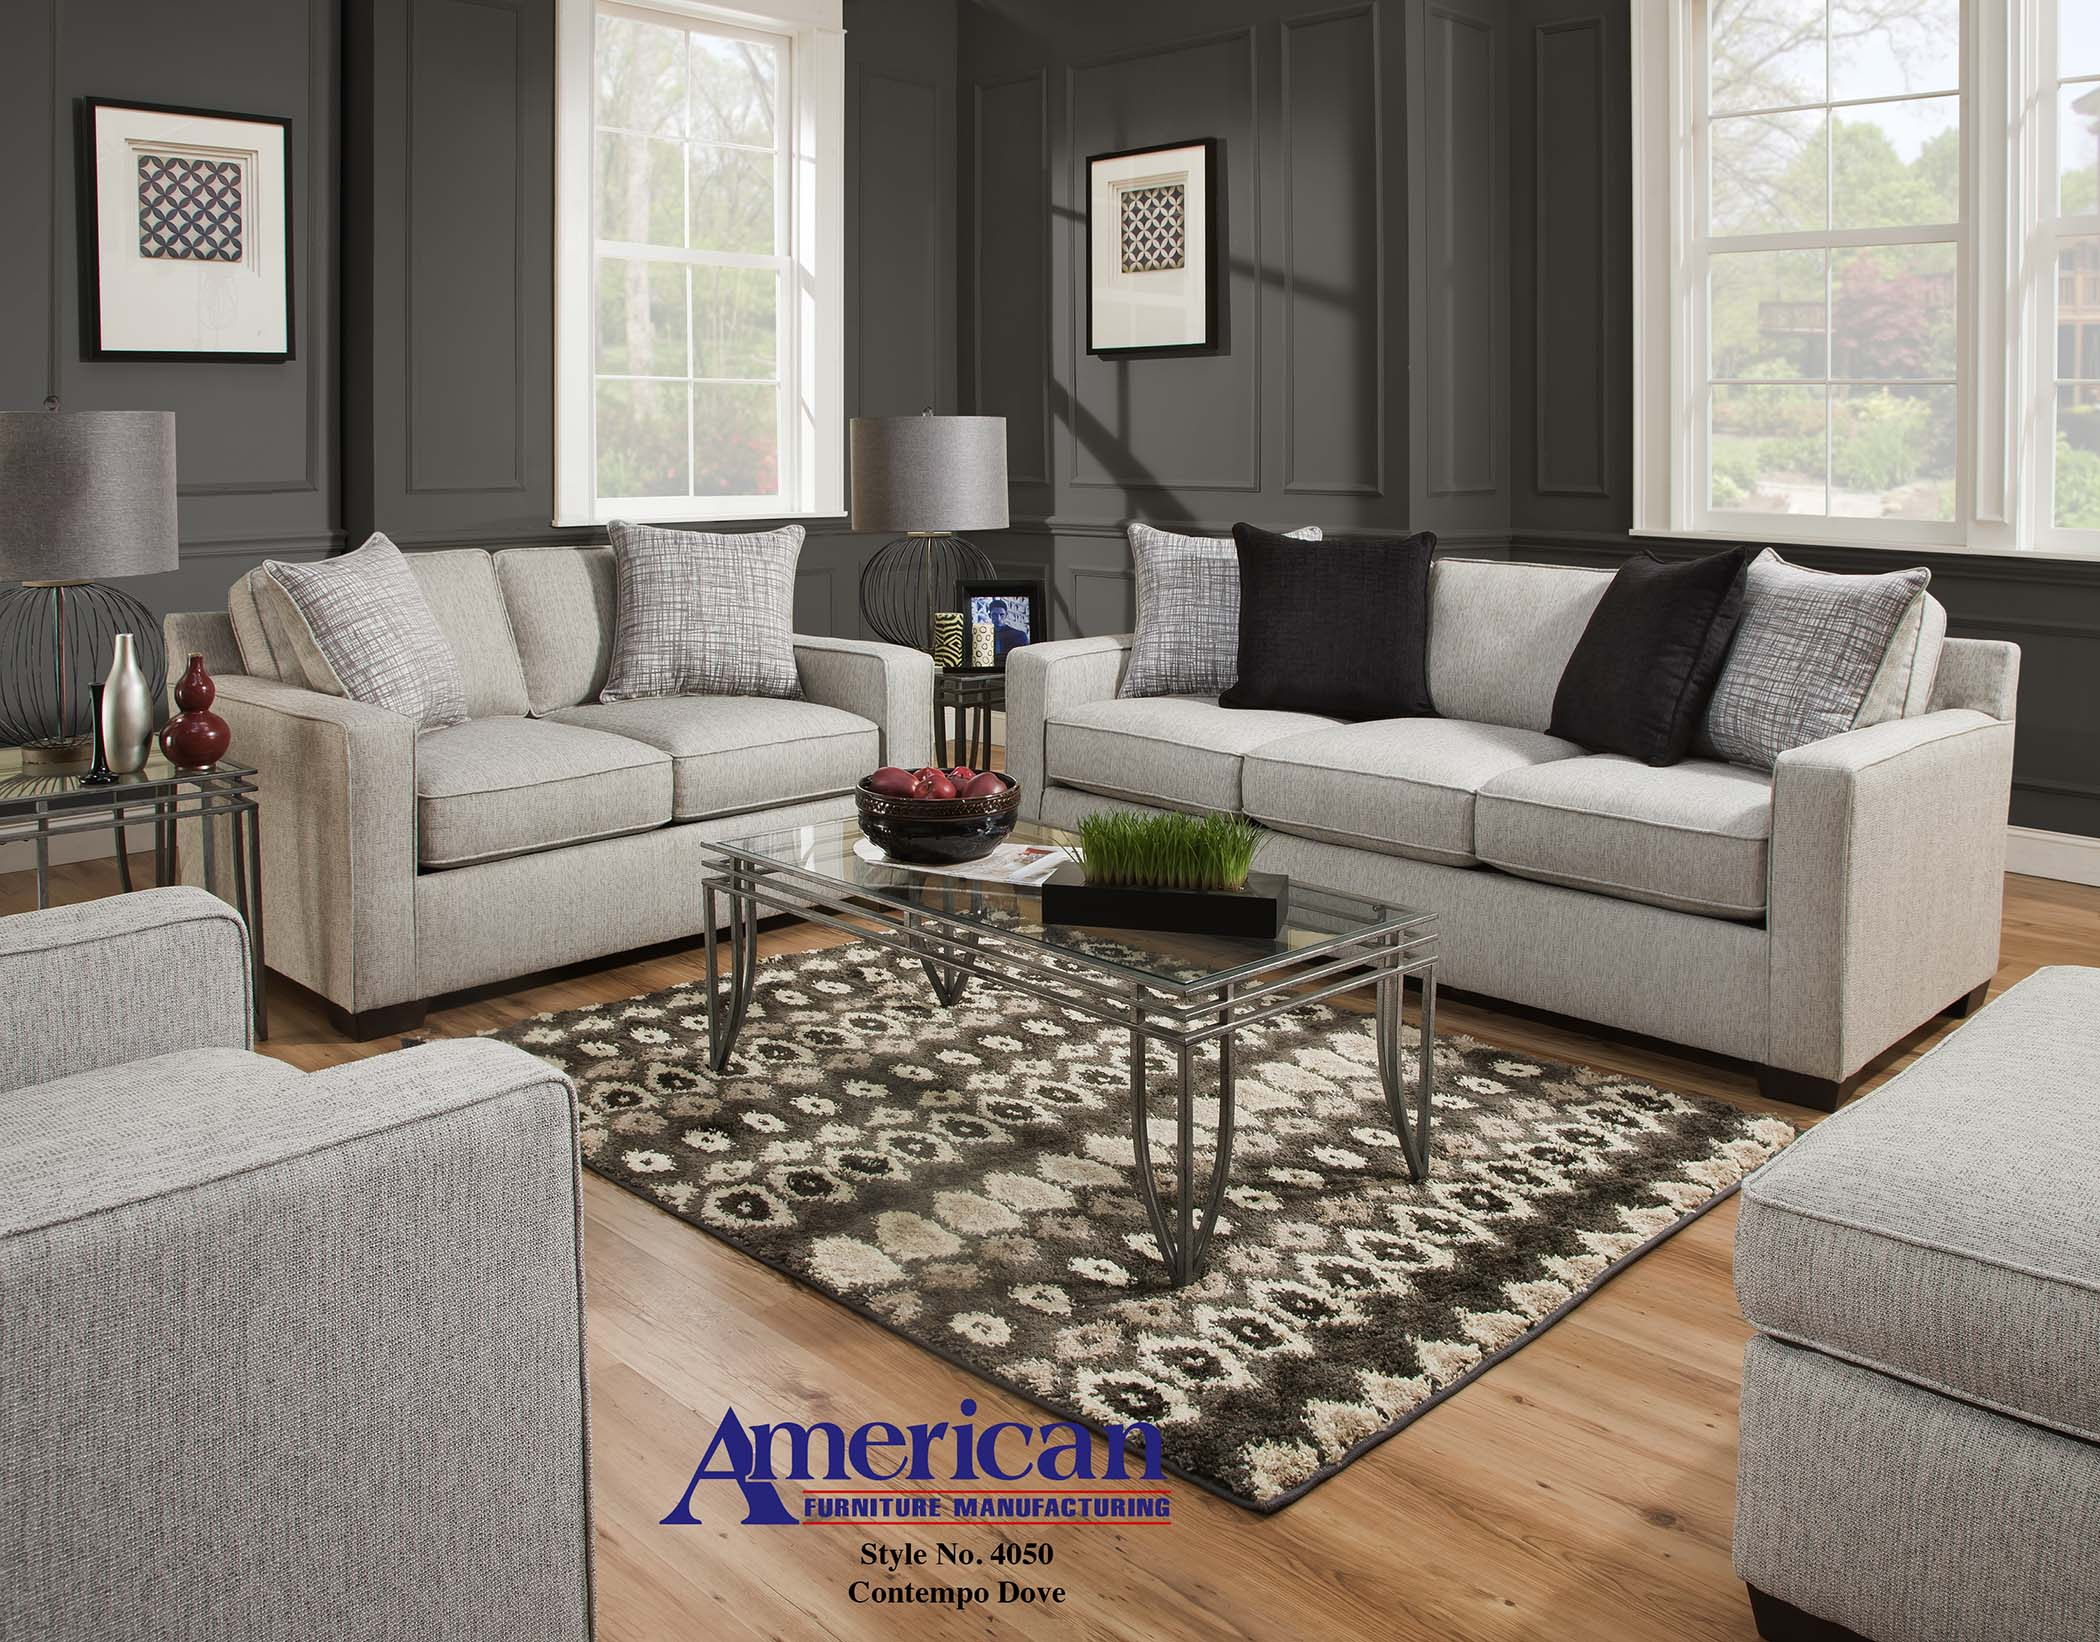 Captivating American Furniture Manufacturing